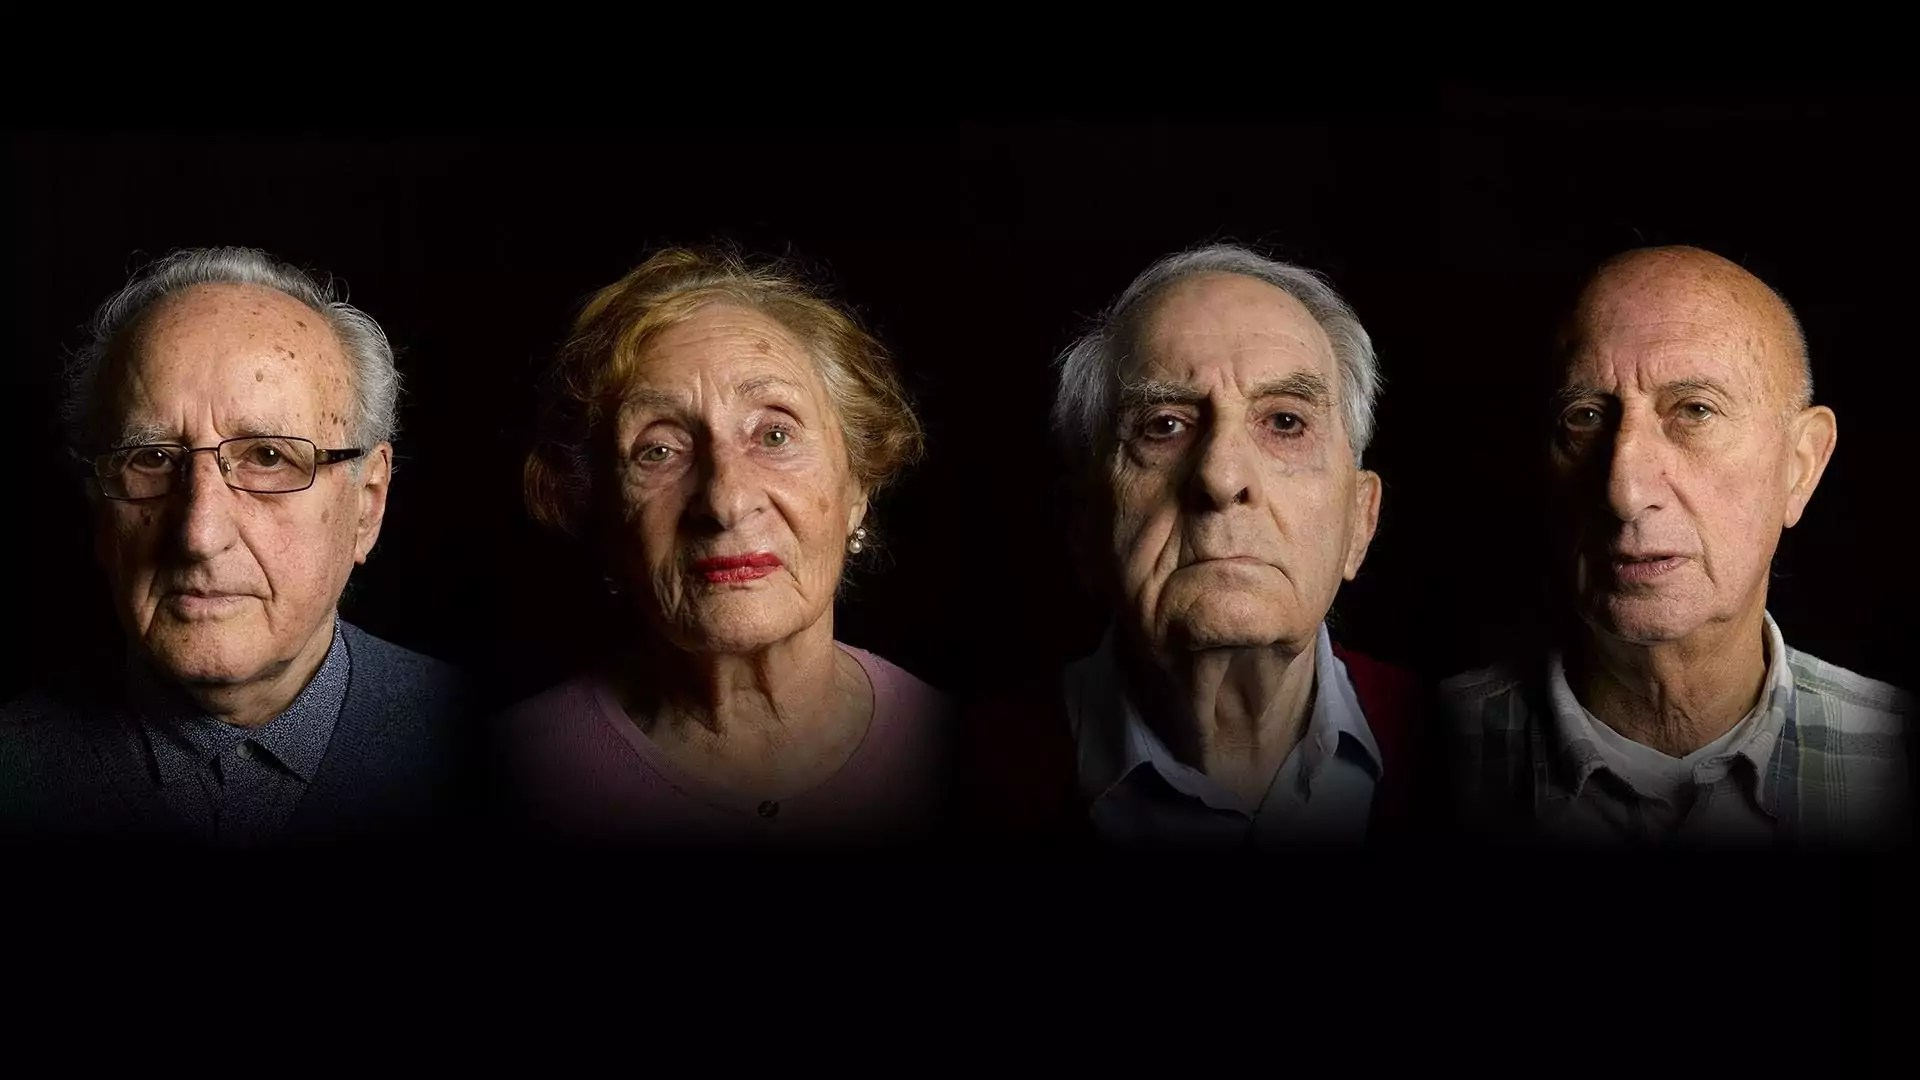 Portraits of four older people.